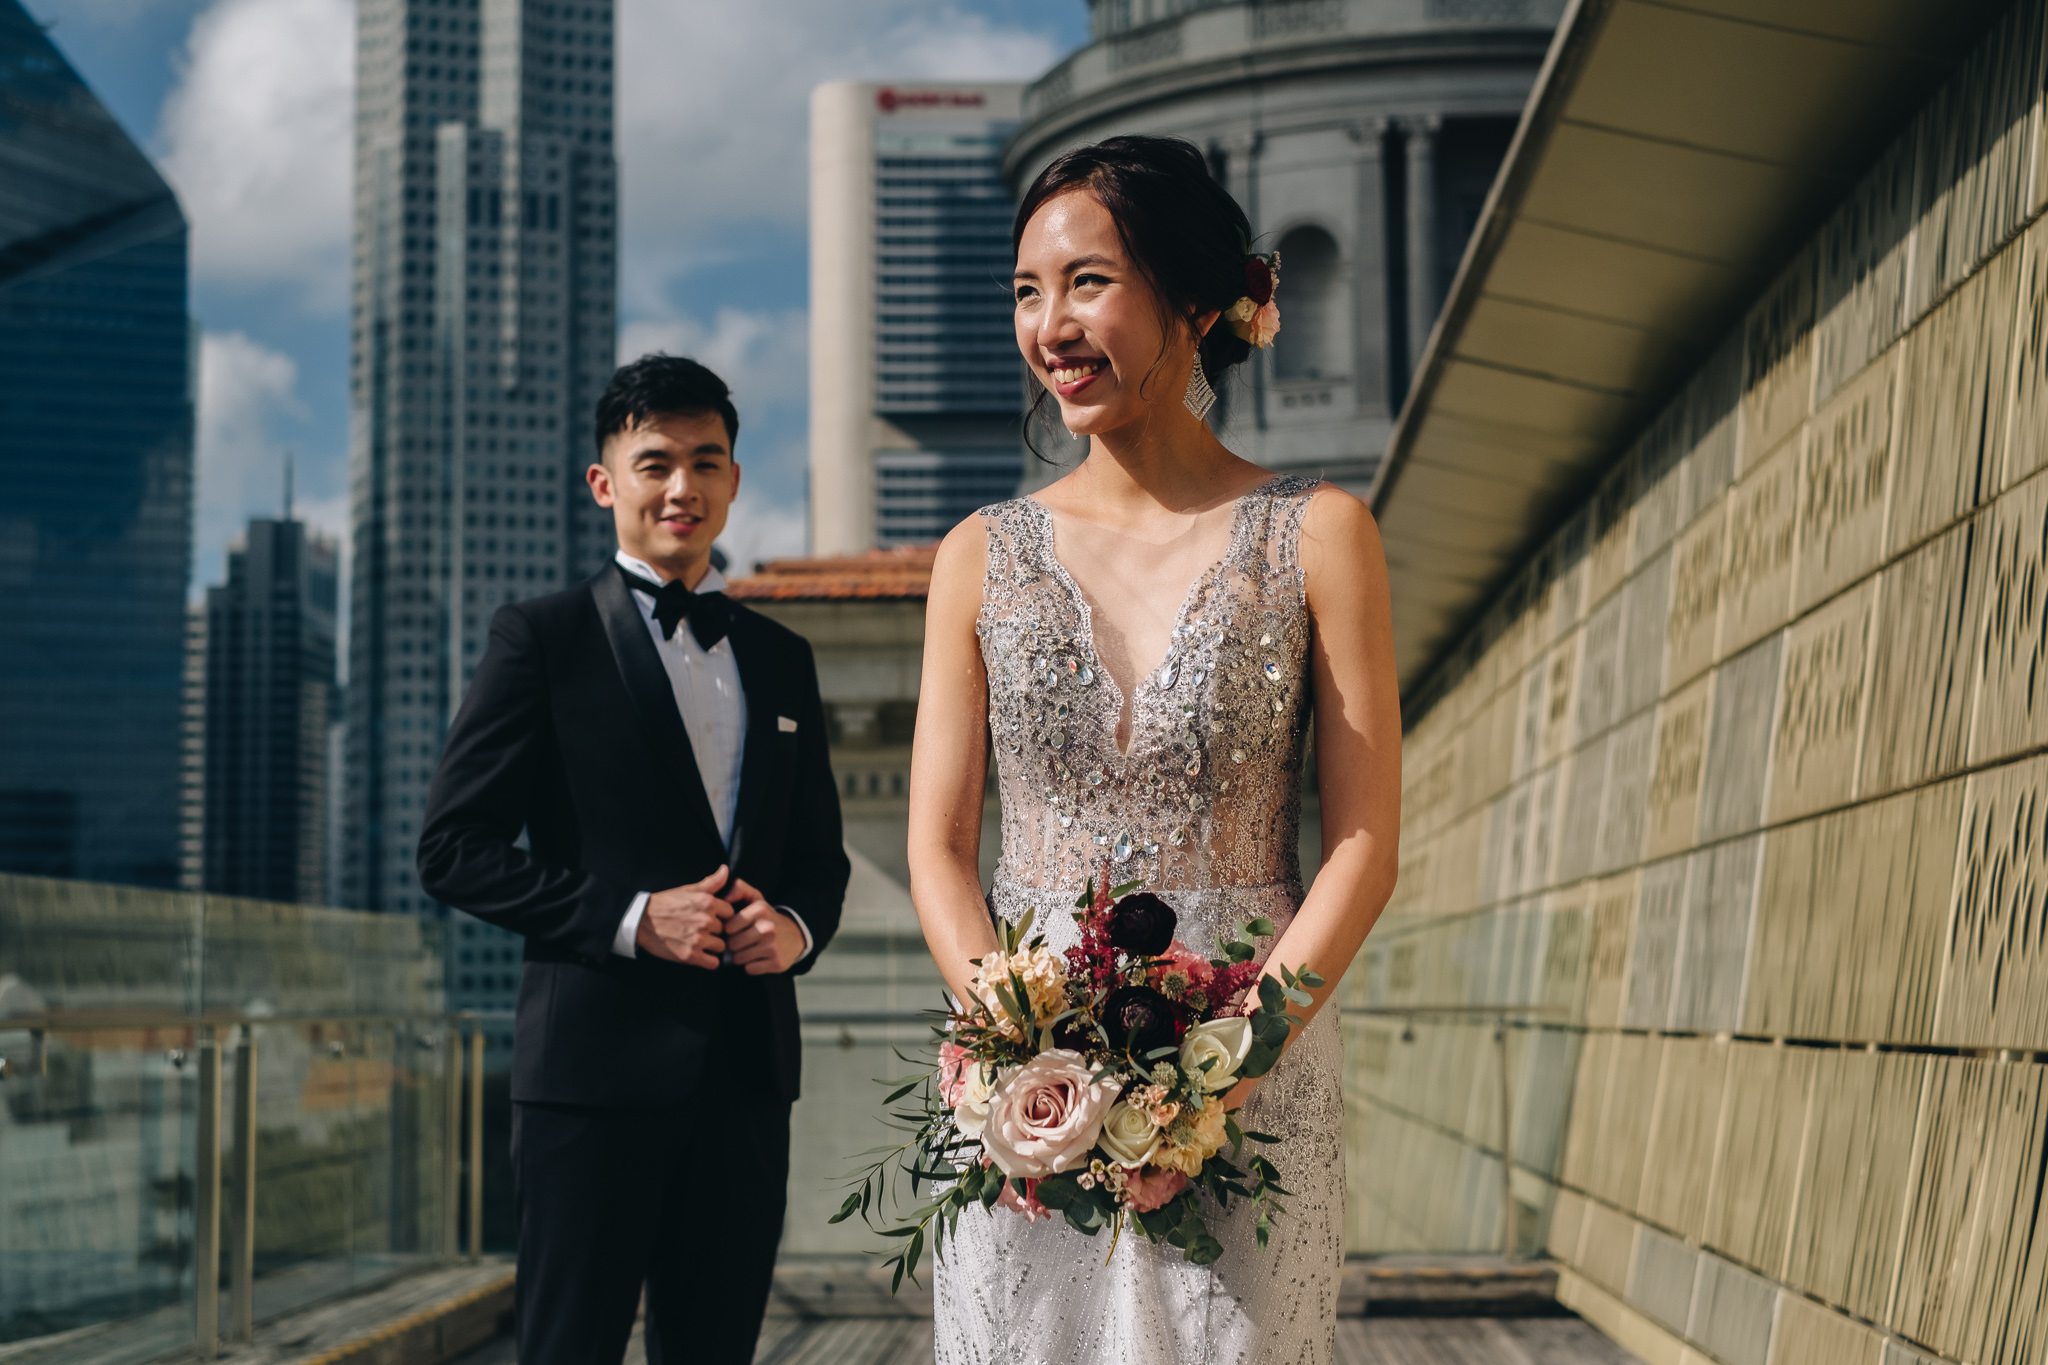 Kenneth & Lixin Pre-Wed (resized for sharing) - 057.jpg